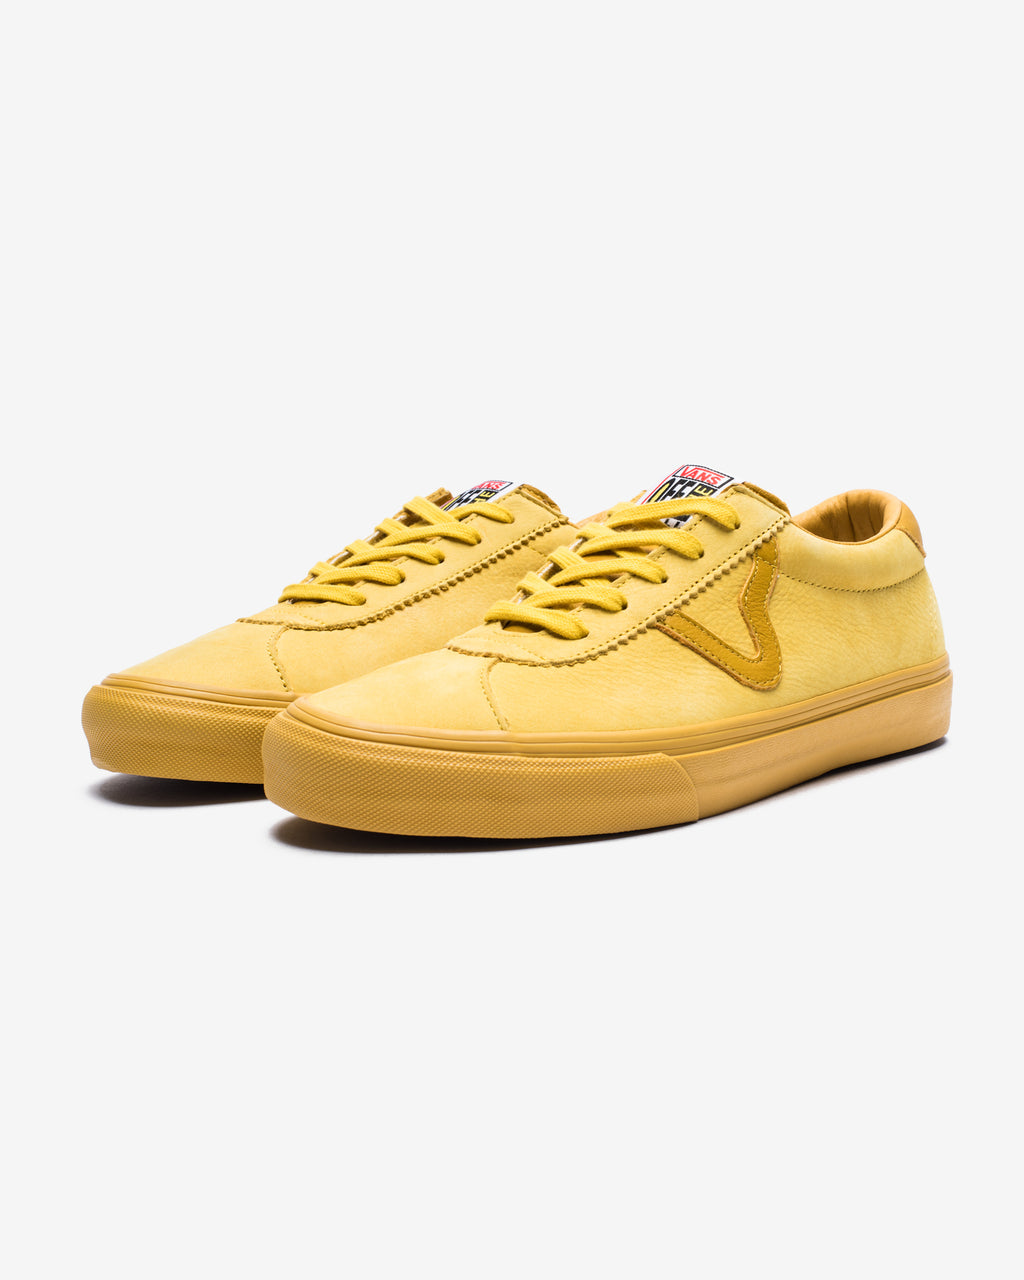 EPOCH SPORT LX (NUBUCK/LEATHER)  - YELLOW